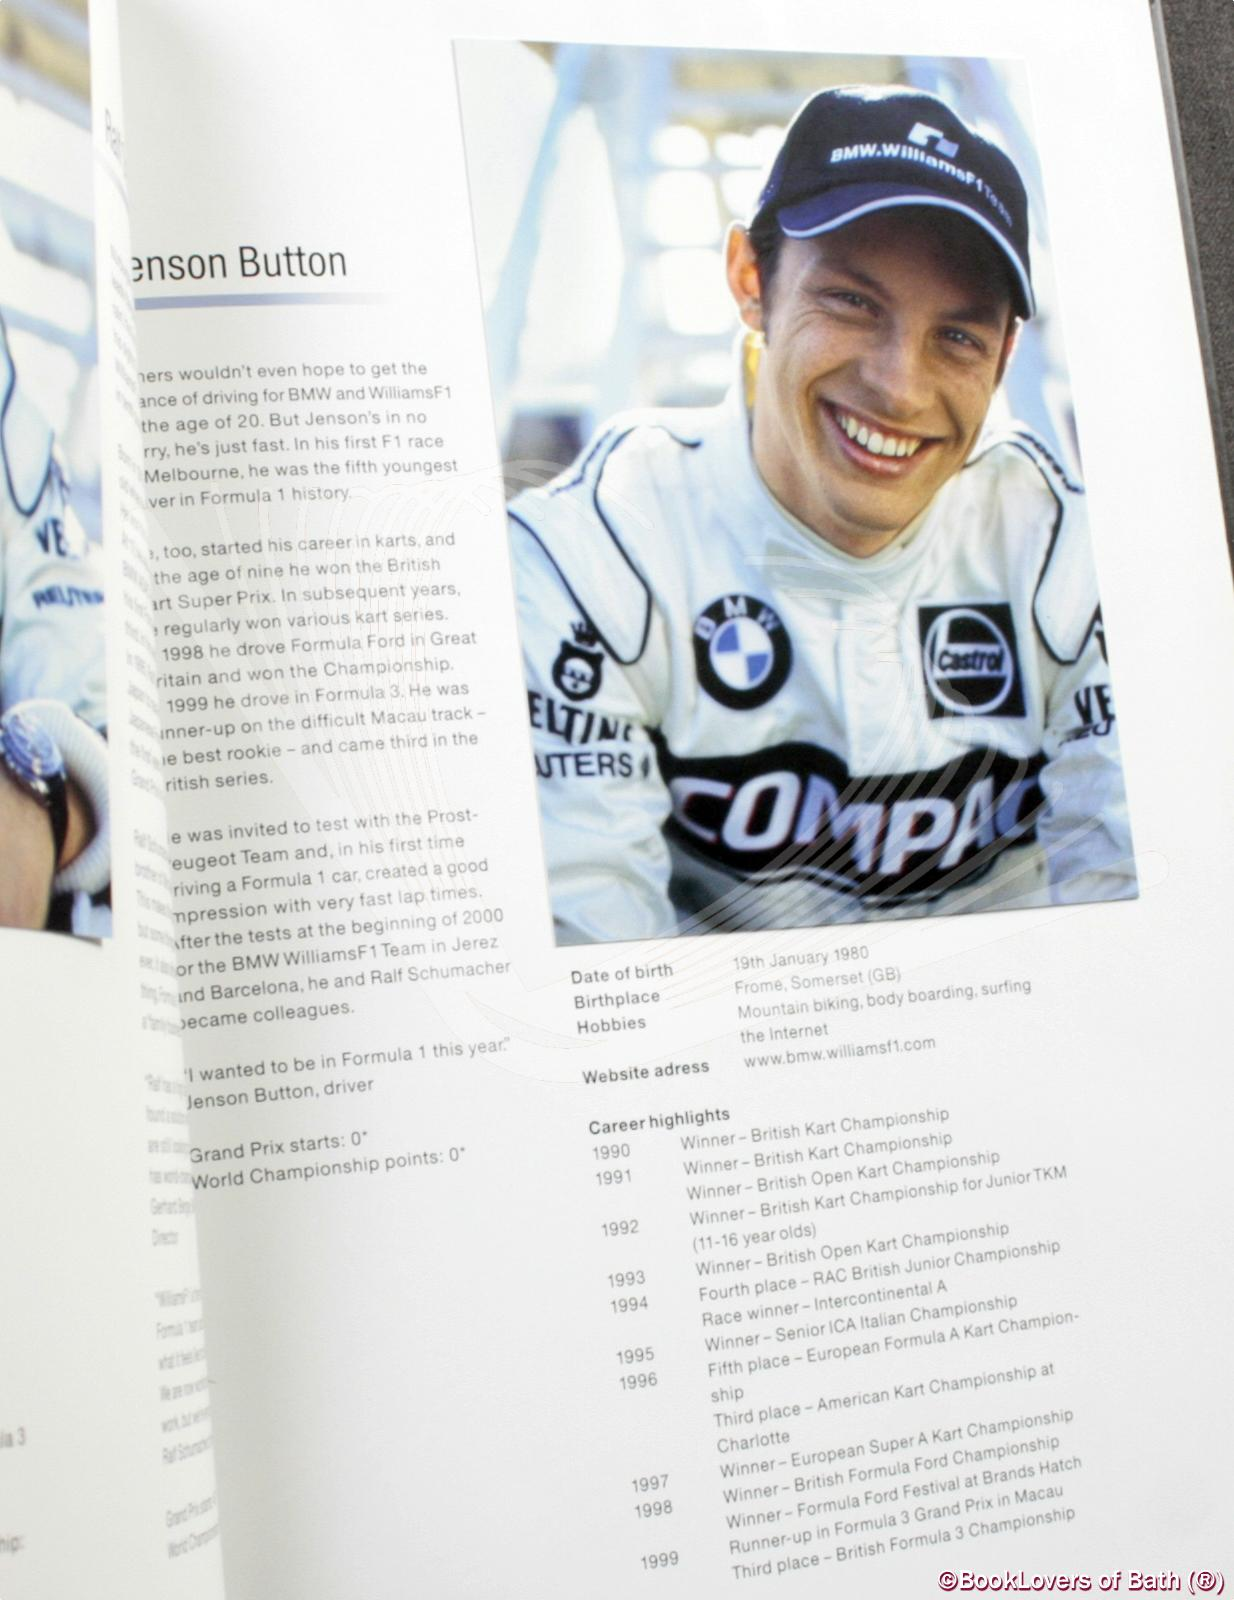 BMW.Williams F1 Team: The Team in 2000 Anon.